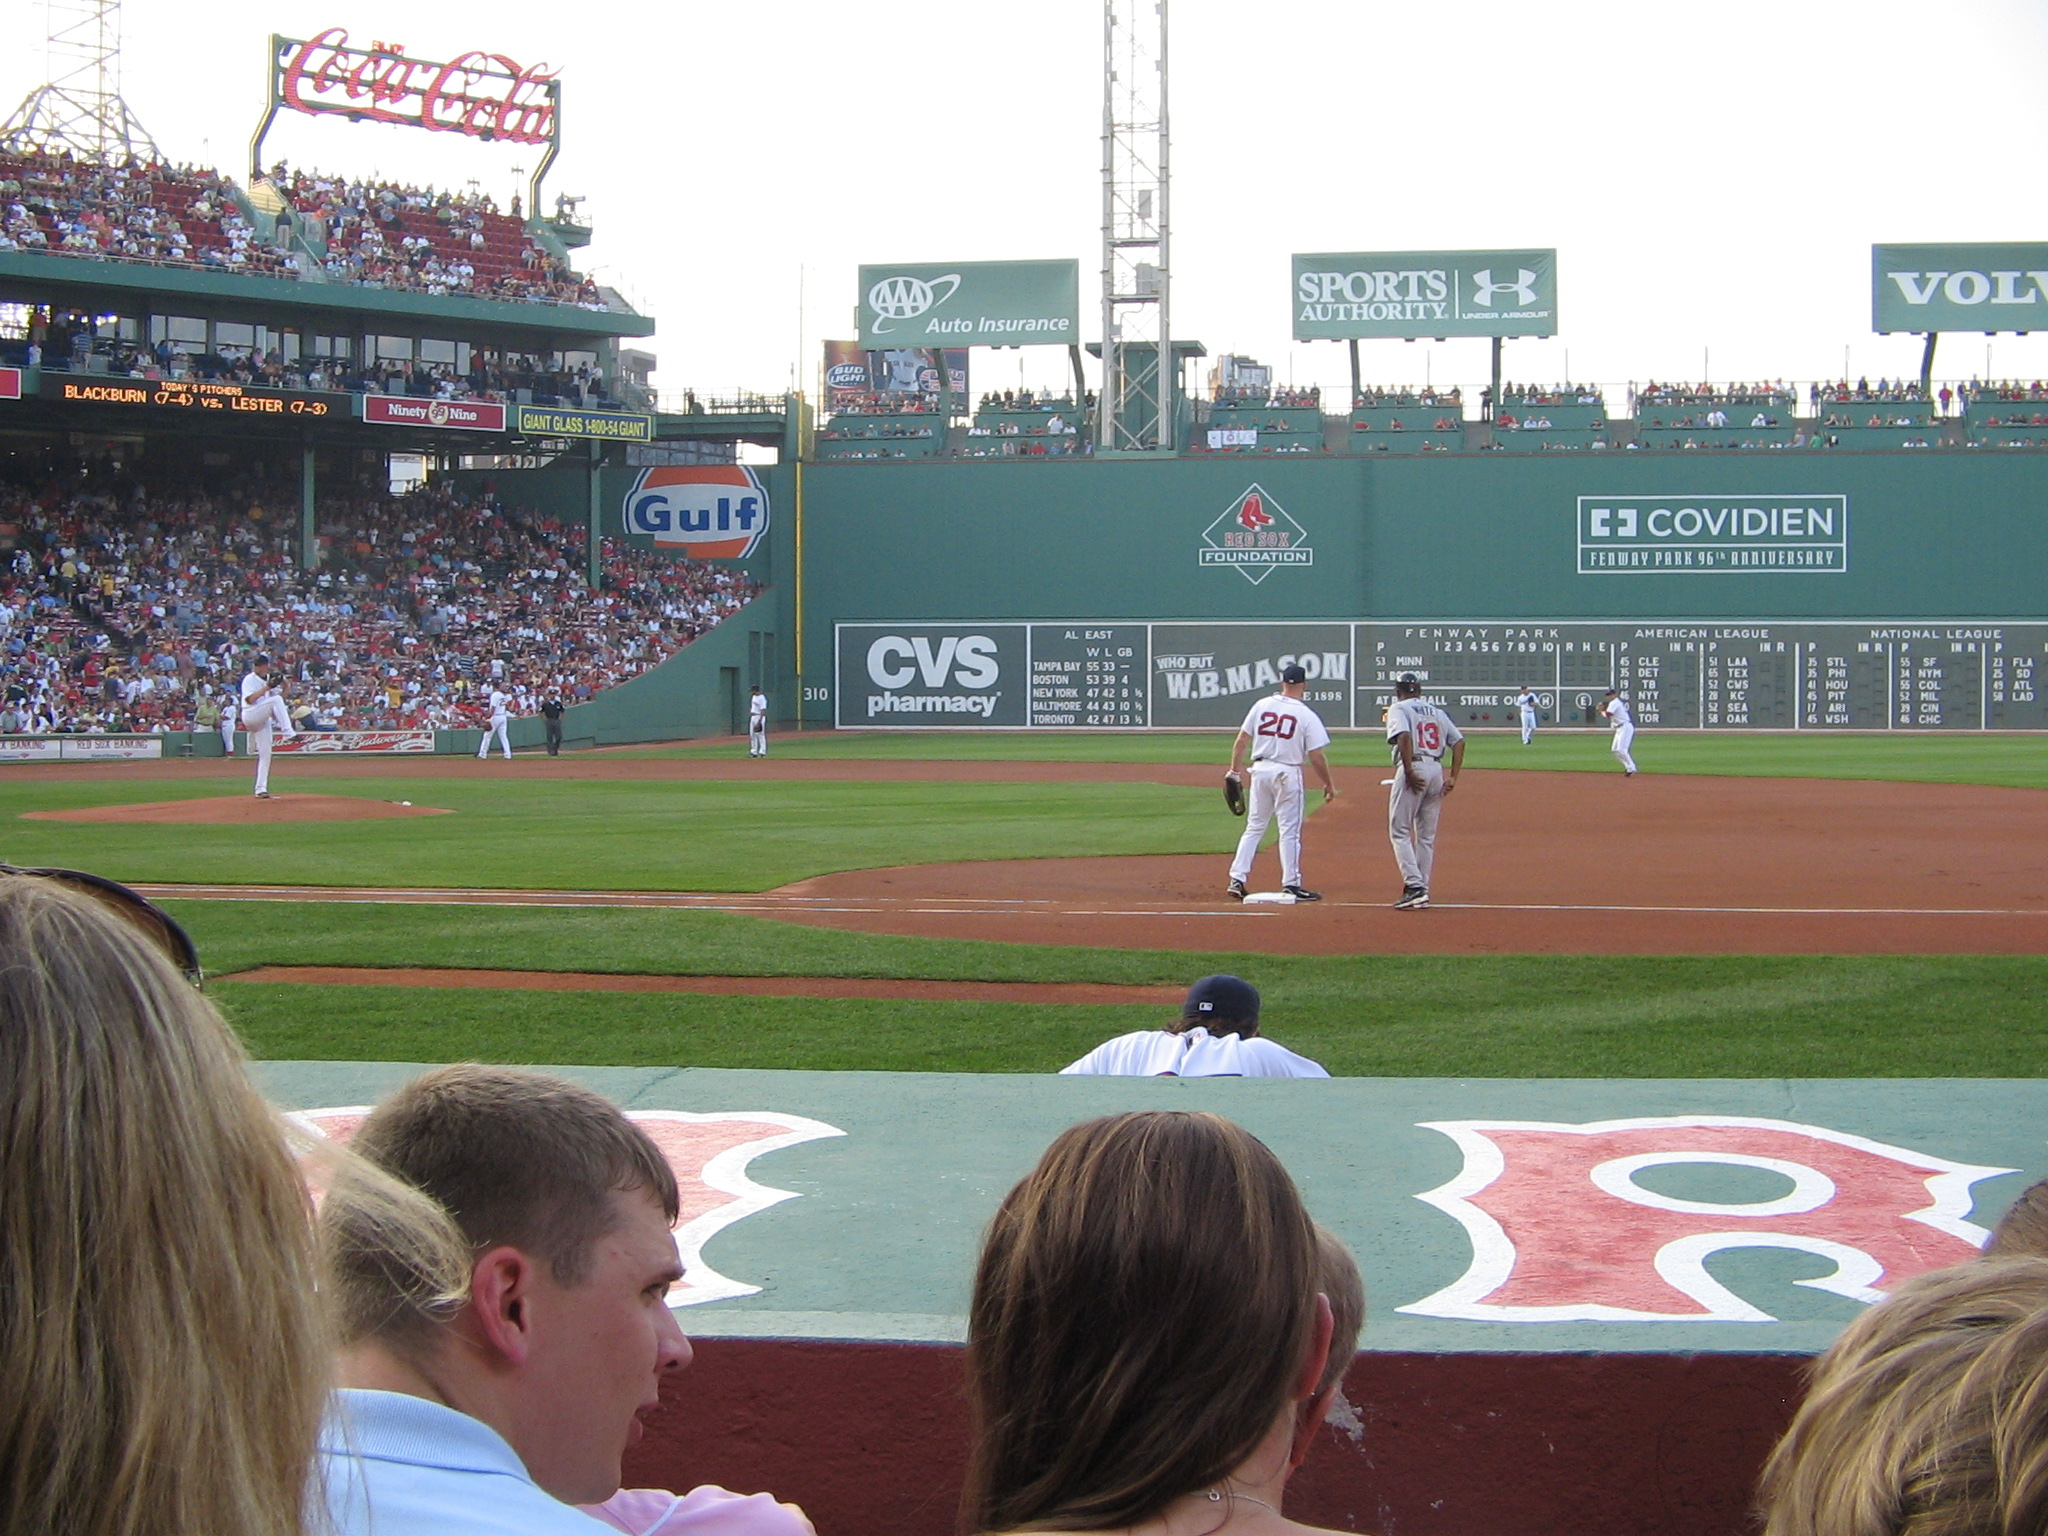 First inning view from the seats at Fenway Park